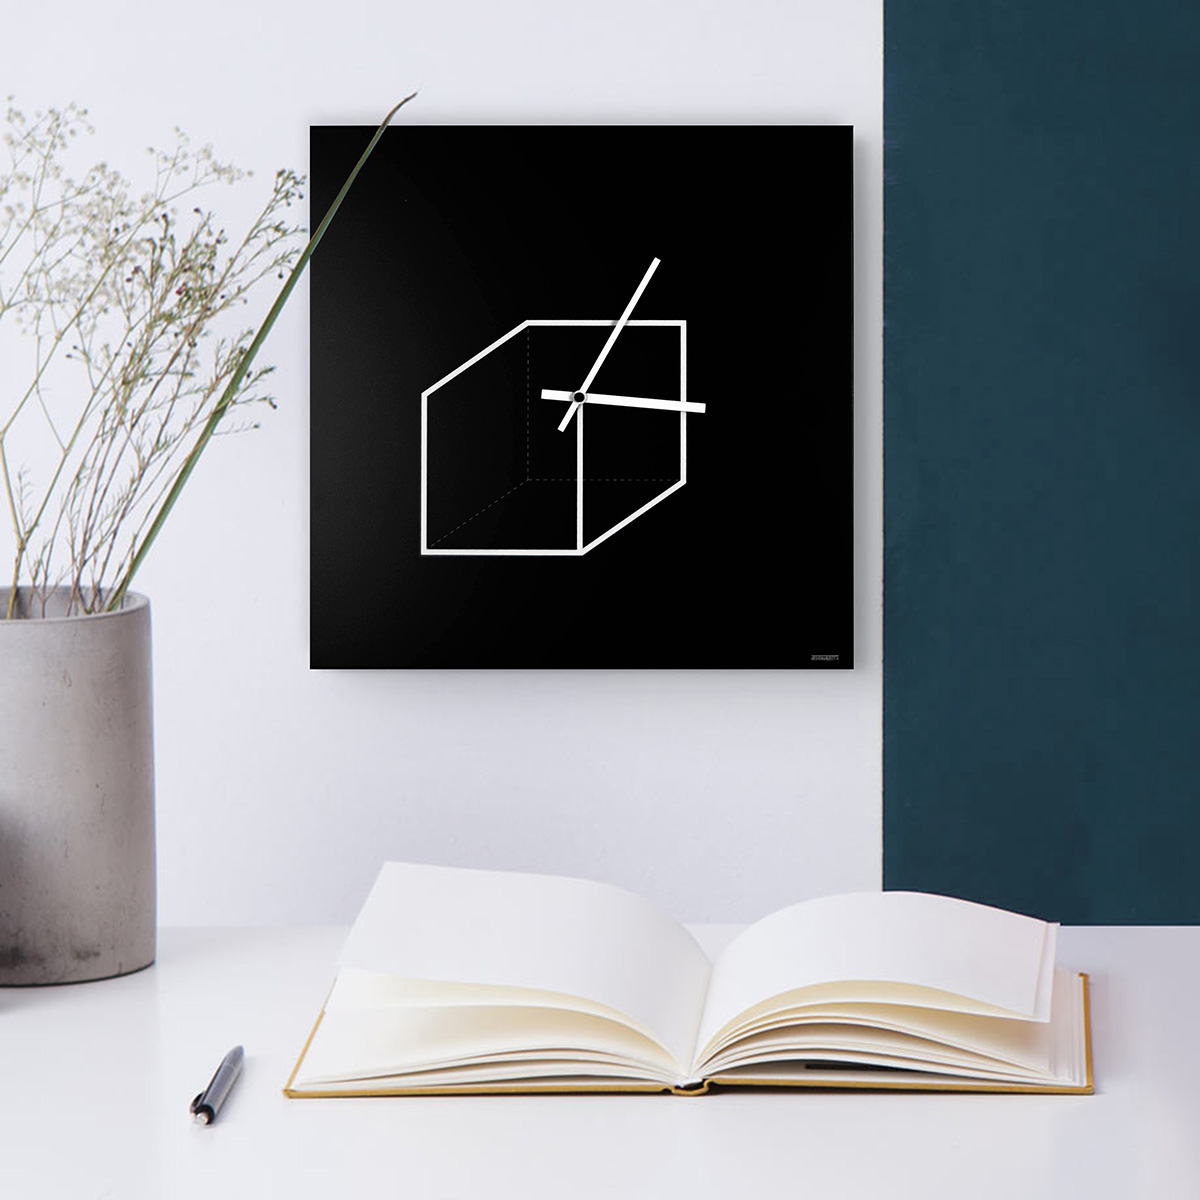 oroloigo-parete-design-wall-clock-mood-cube